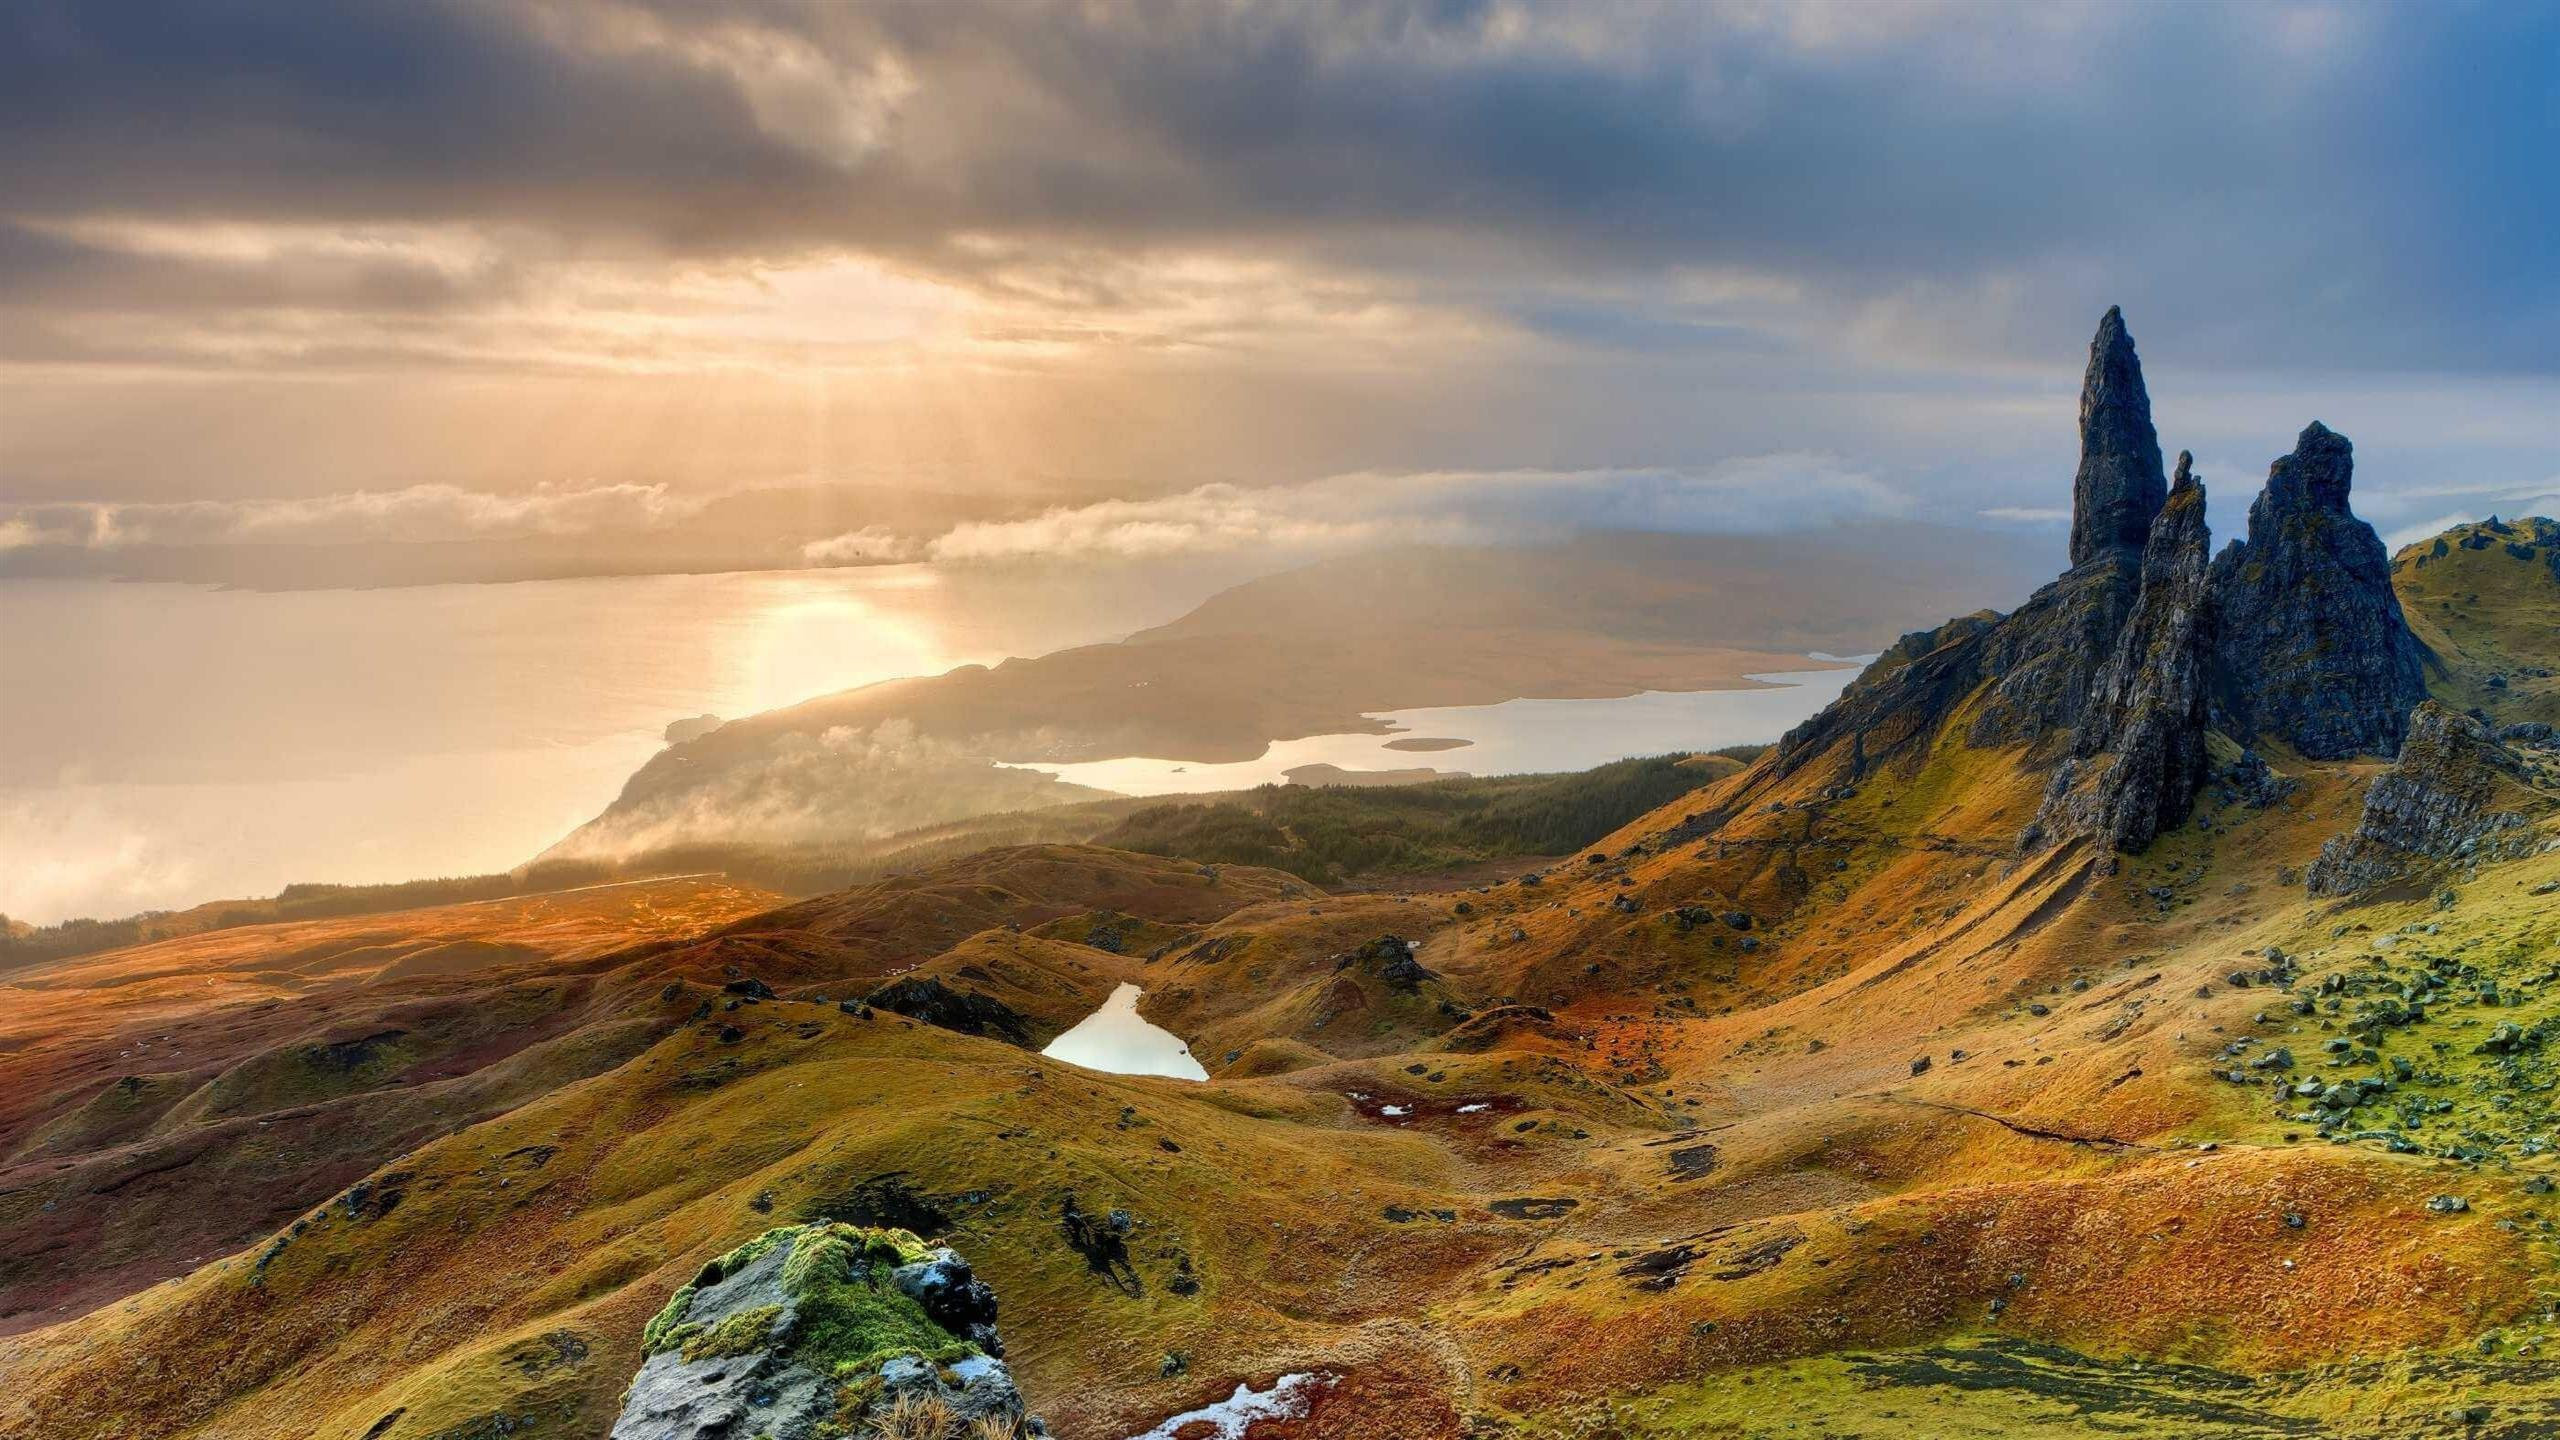 2560x1440 Scottish Highlands Graceful Mountain in the United Kingdom HD Wallpapers